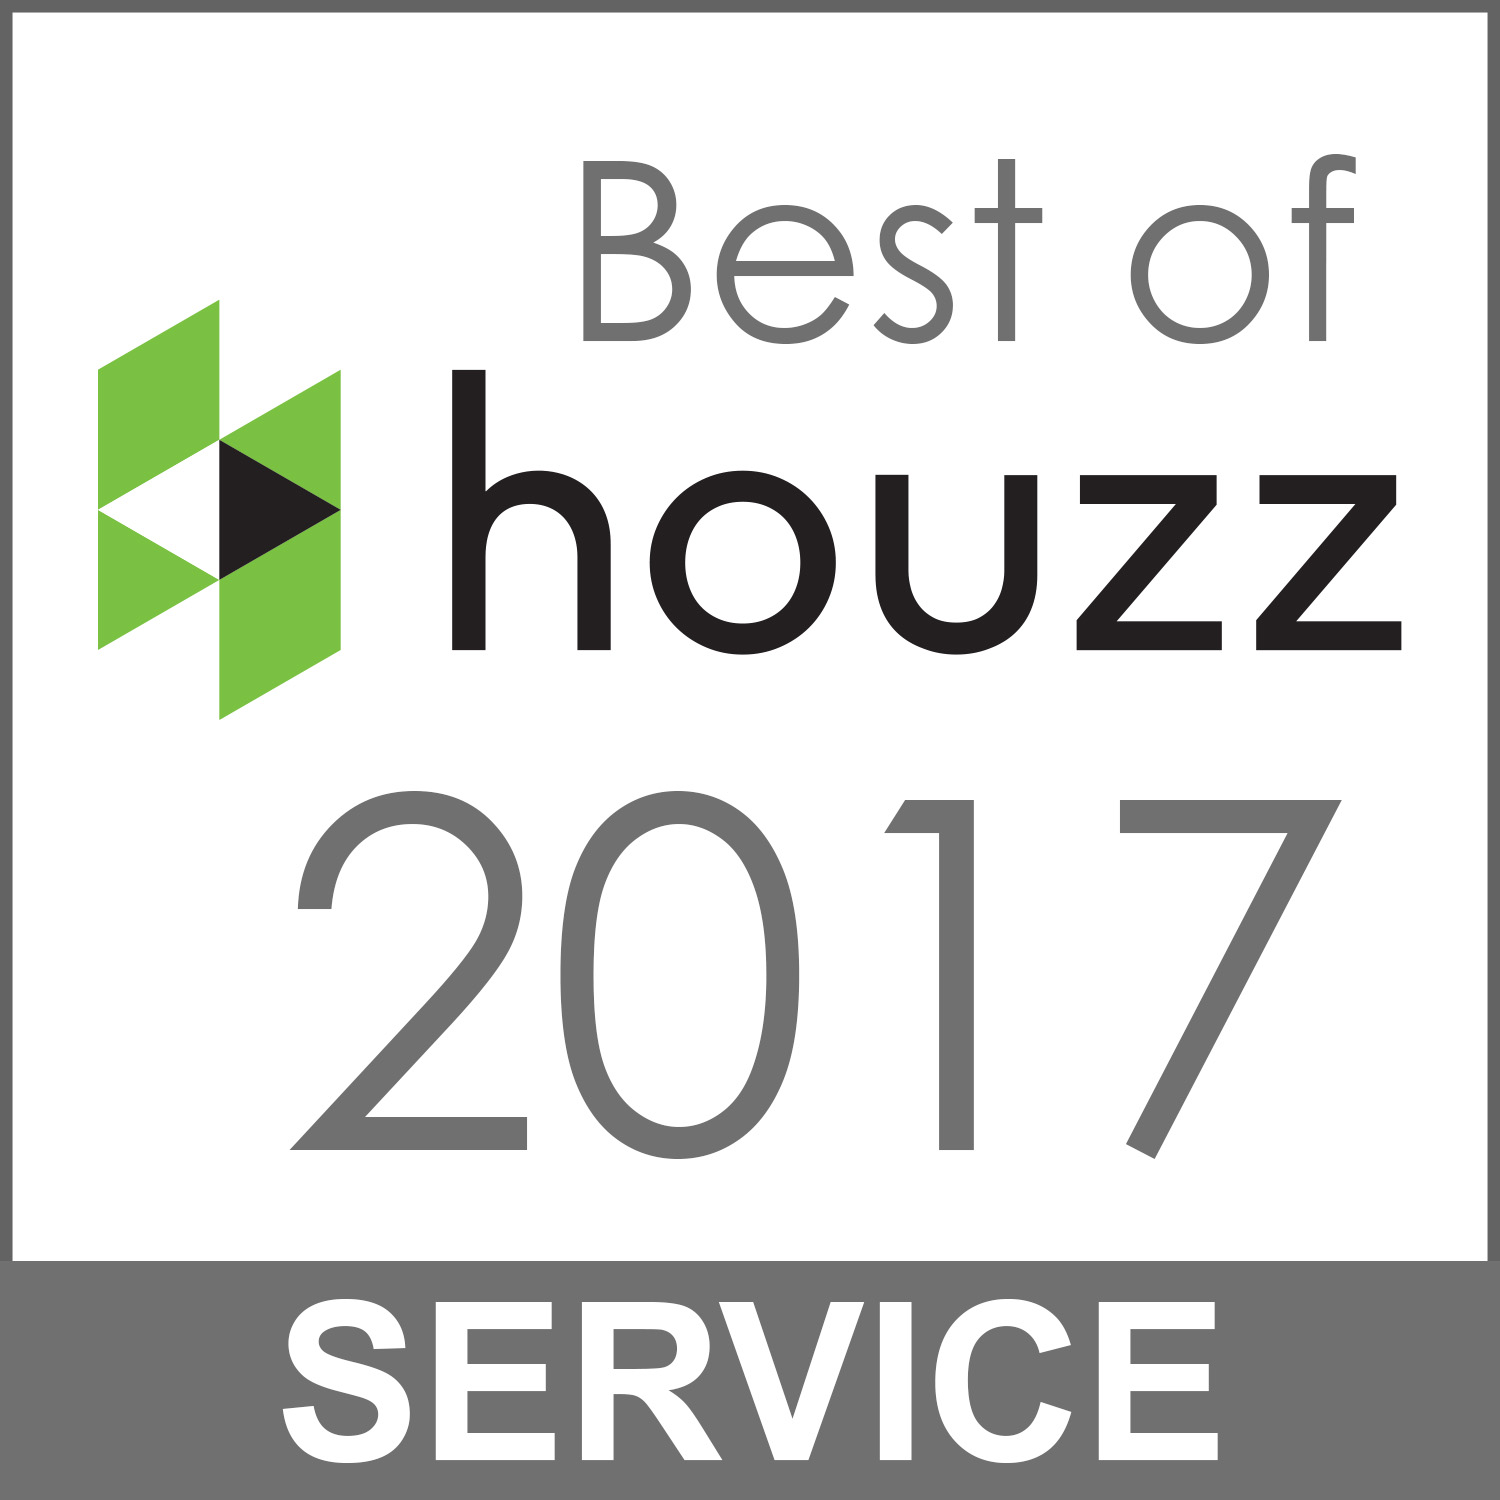 Best of houszz 2017 Service Badge